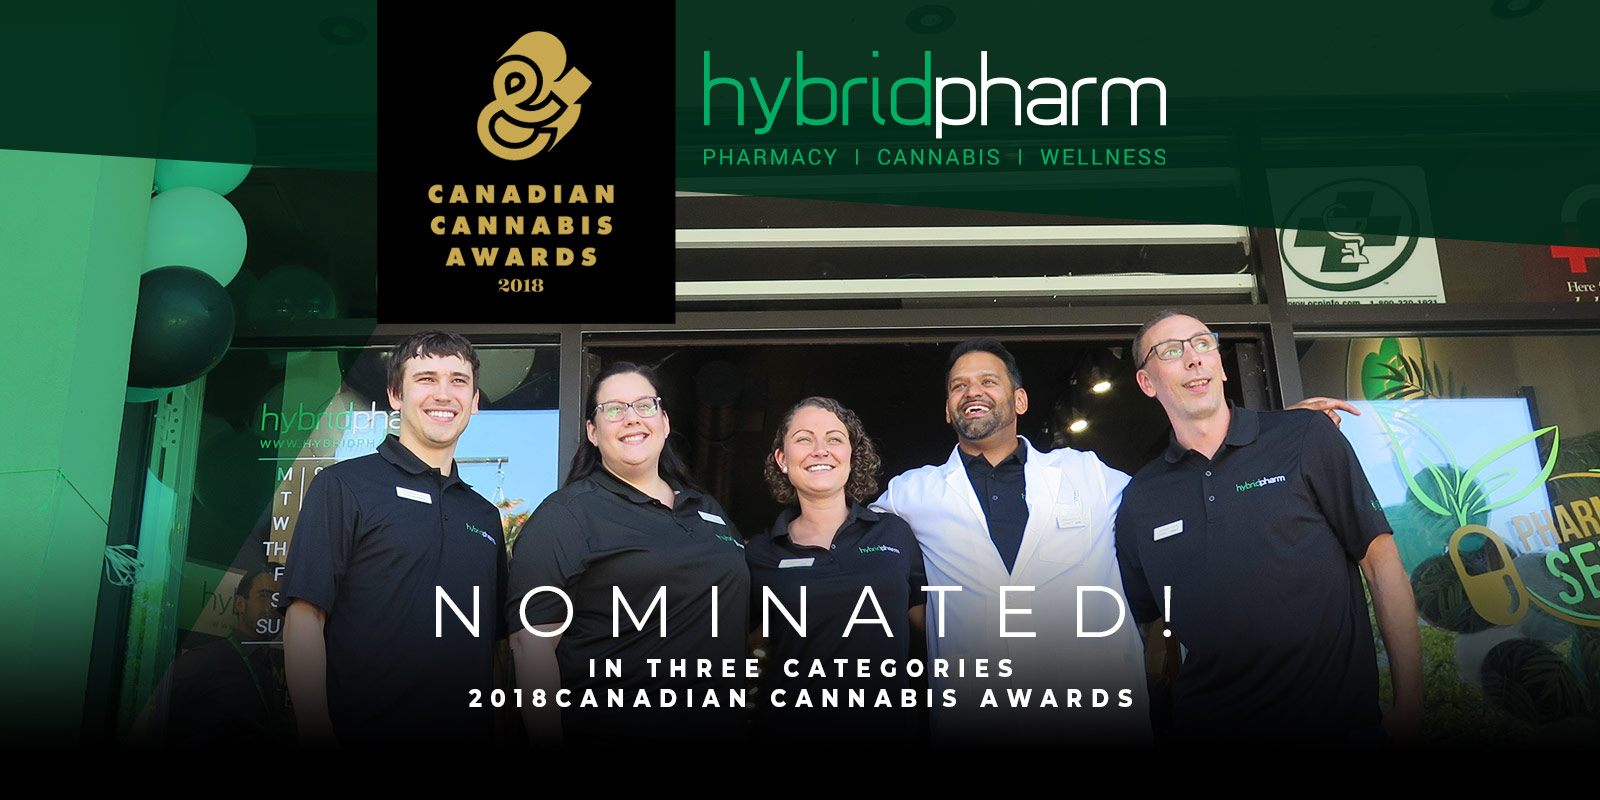 2018 Canadian Cannabis Awards